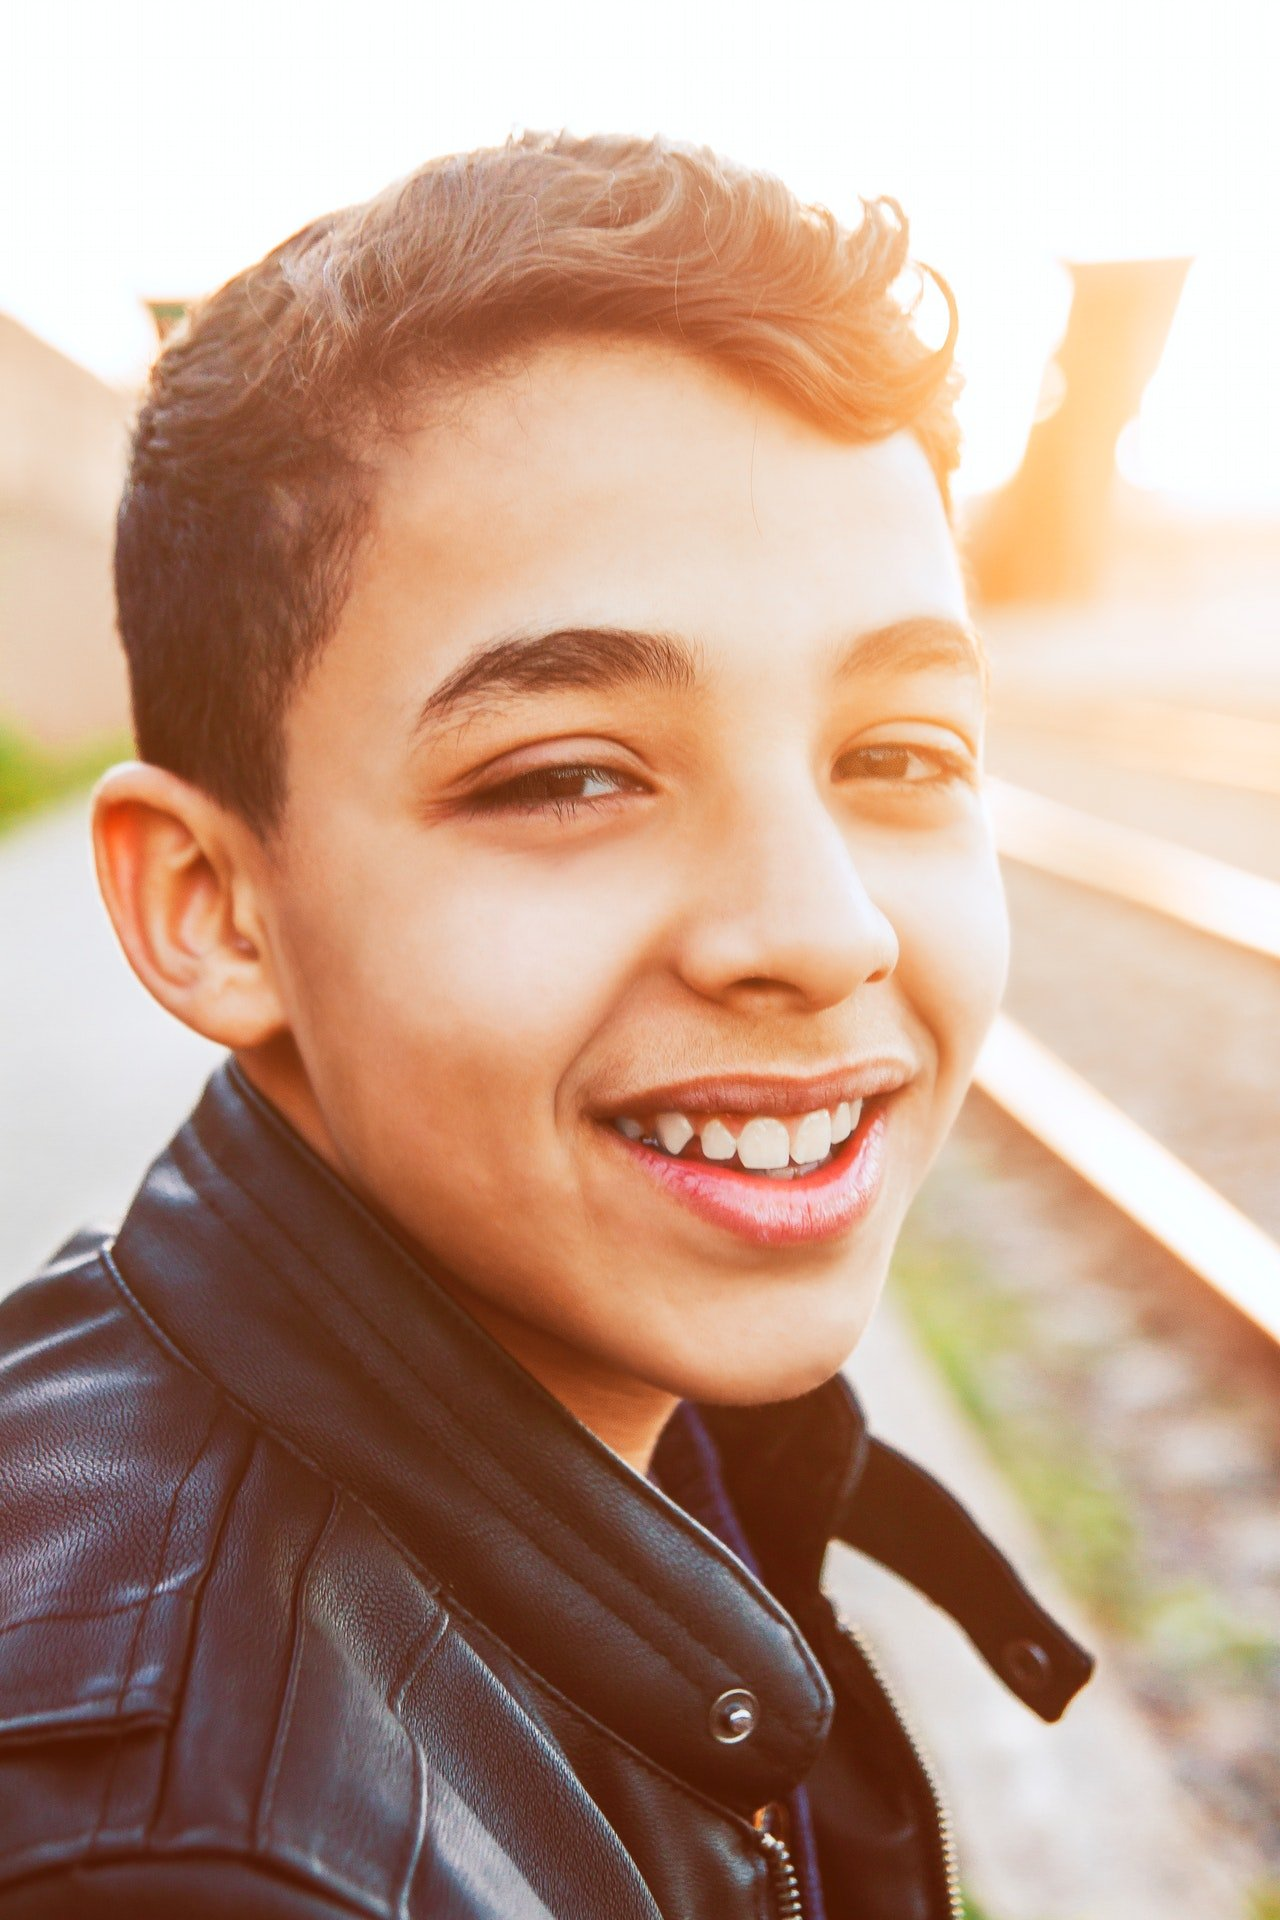 Photo of a young boy smiling | Photo: Pexels